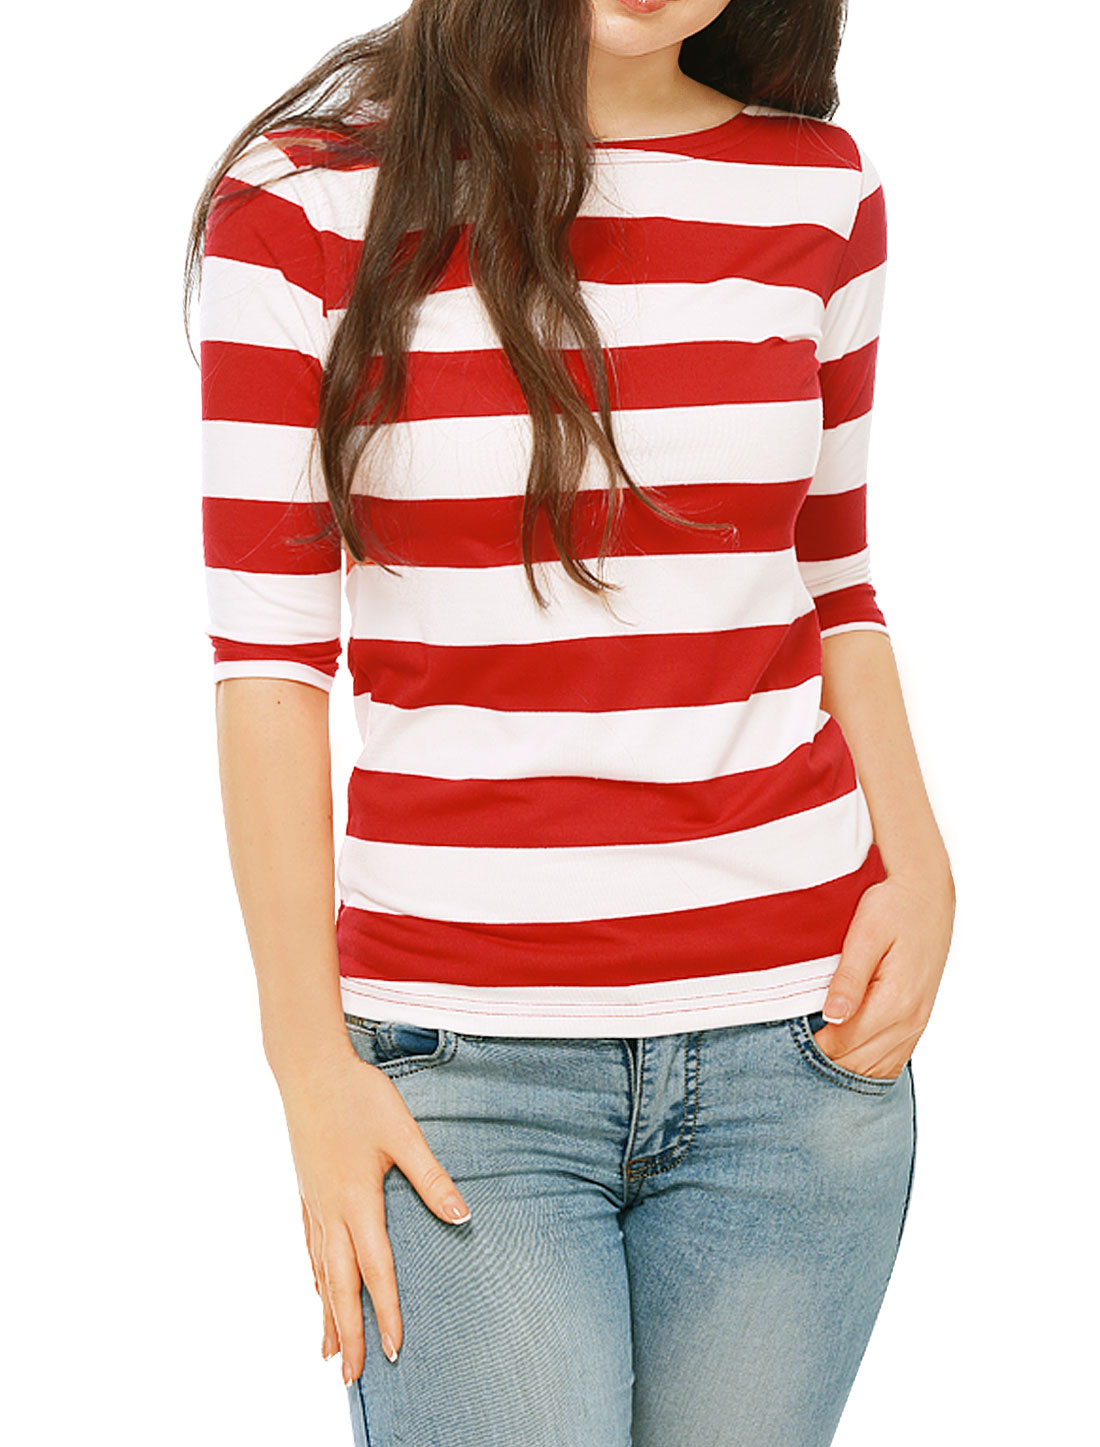 Ladies Elbow Sleeves Boat Neck Bold Stripes Tee Shirt Red L